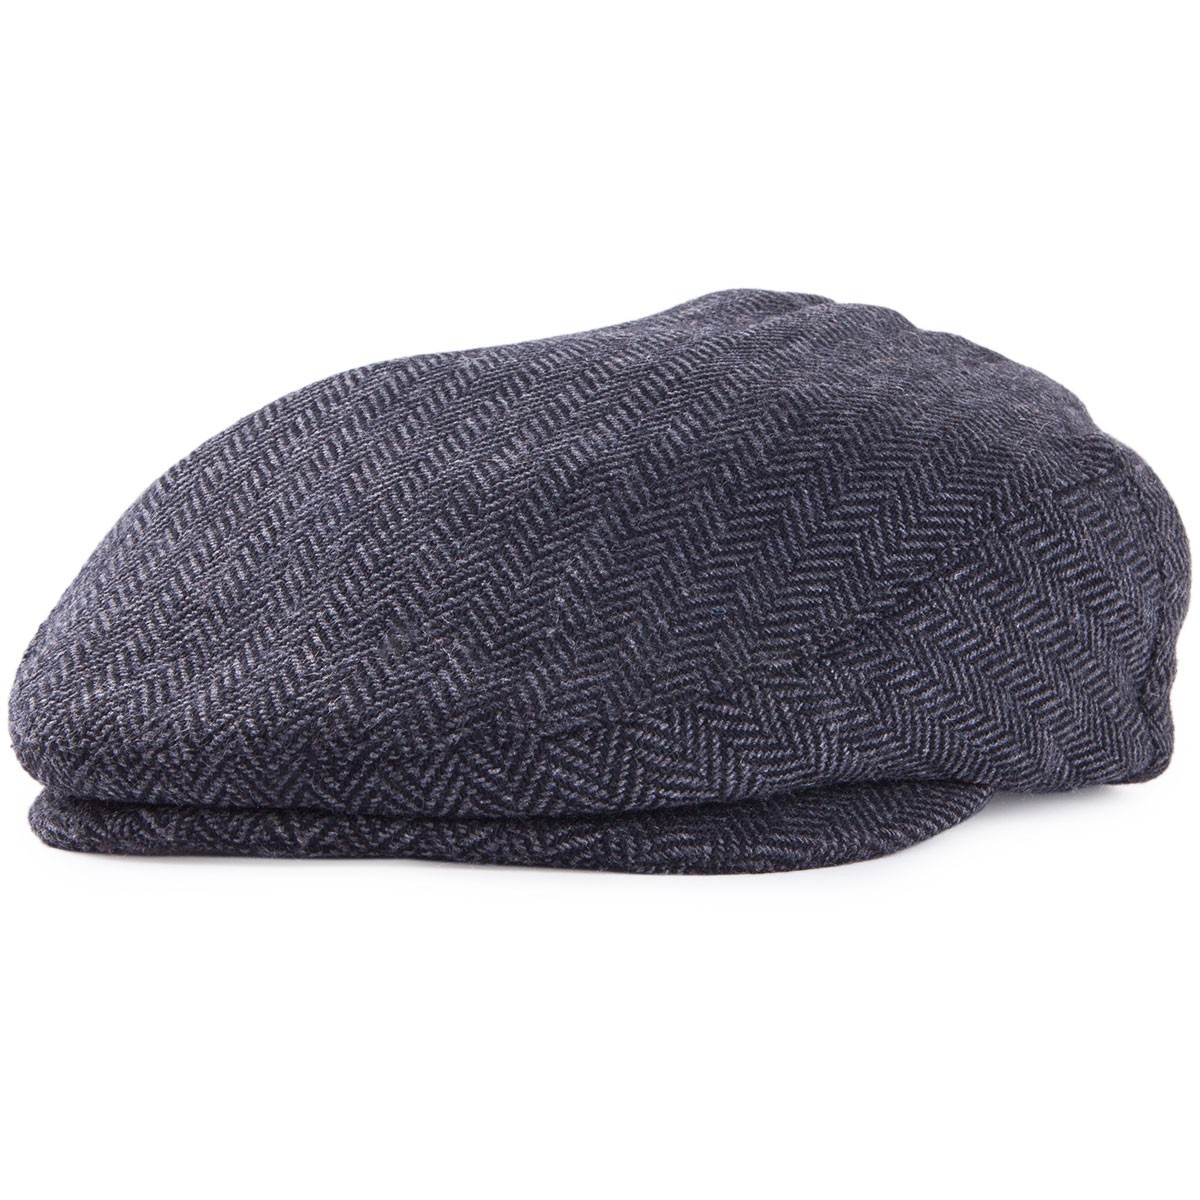 Brixton Hooligan Snap Cap Hat - Grey/Black